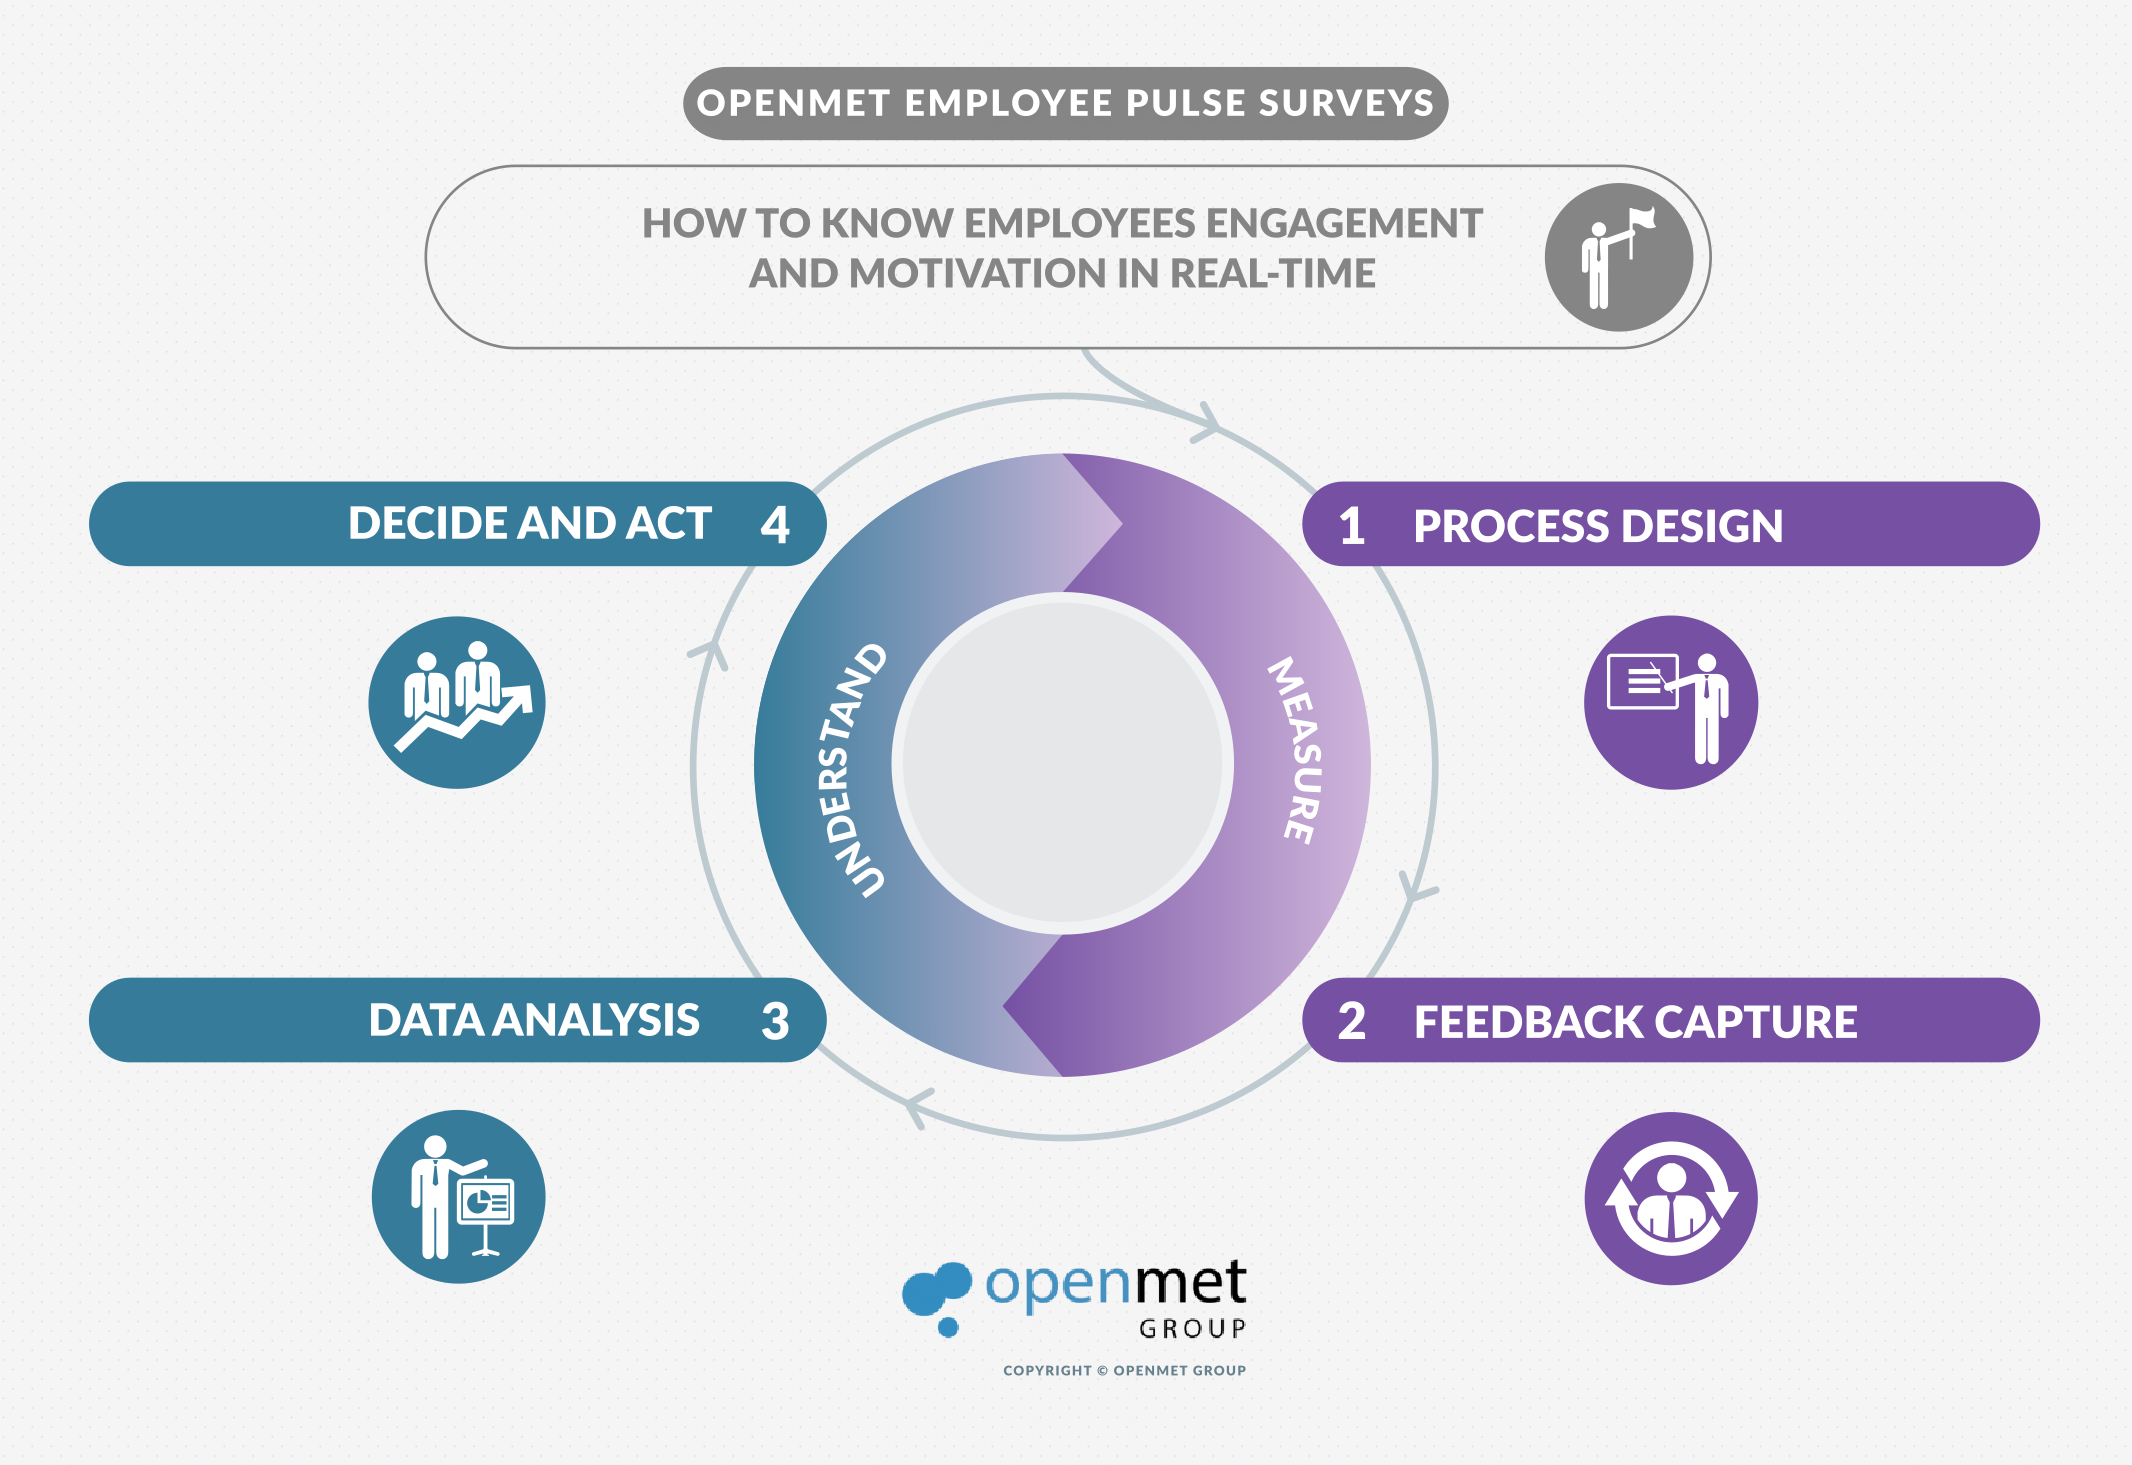 Openmet EmployeePS